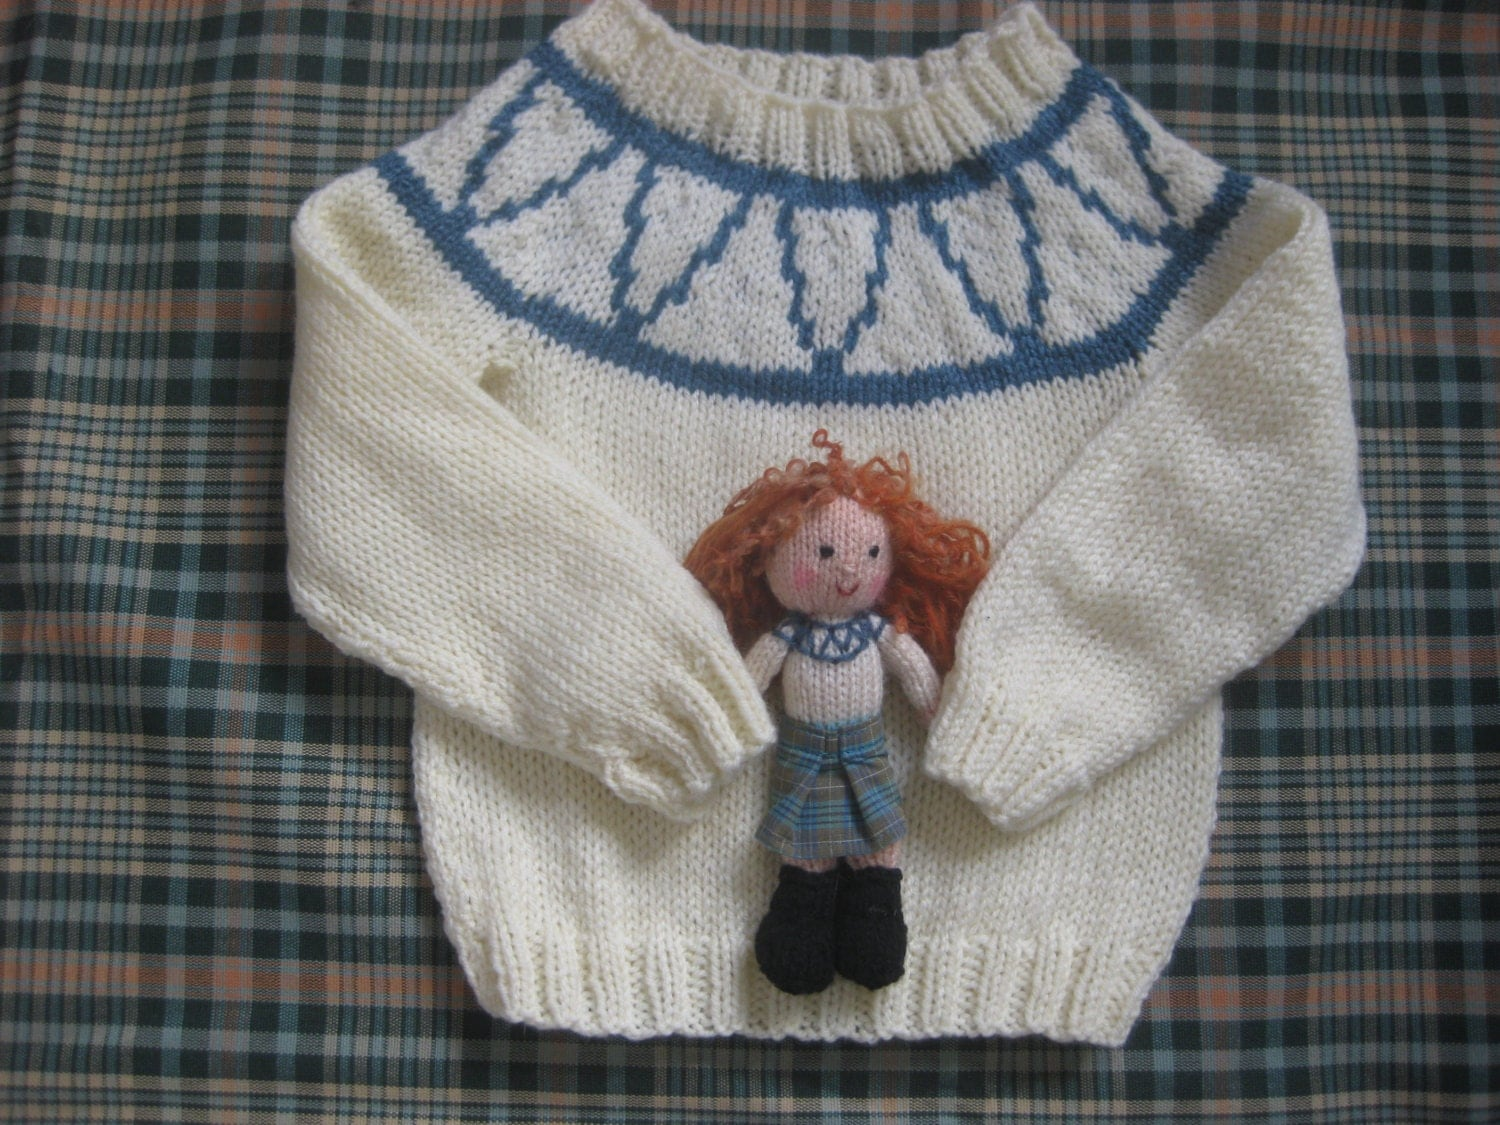 Knitting Pattern For Katie Morag Jumper : Katie Morag inspired jumper Doll and skirt can be addedAge